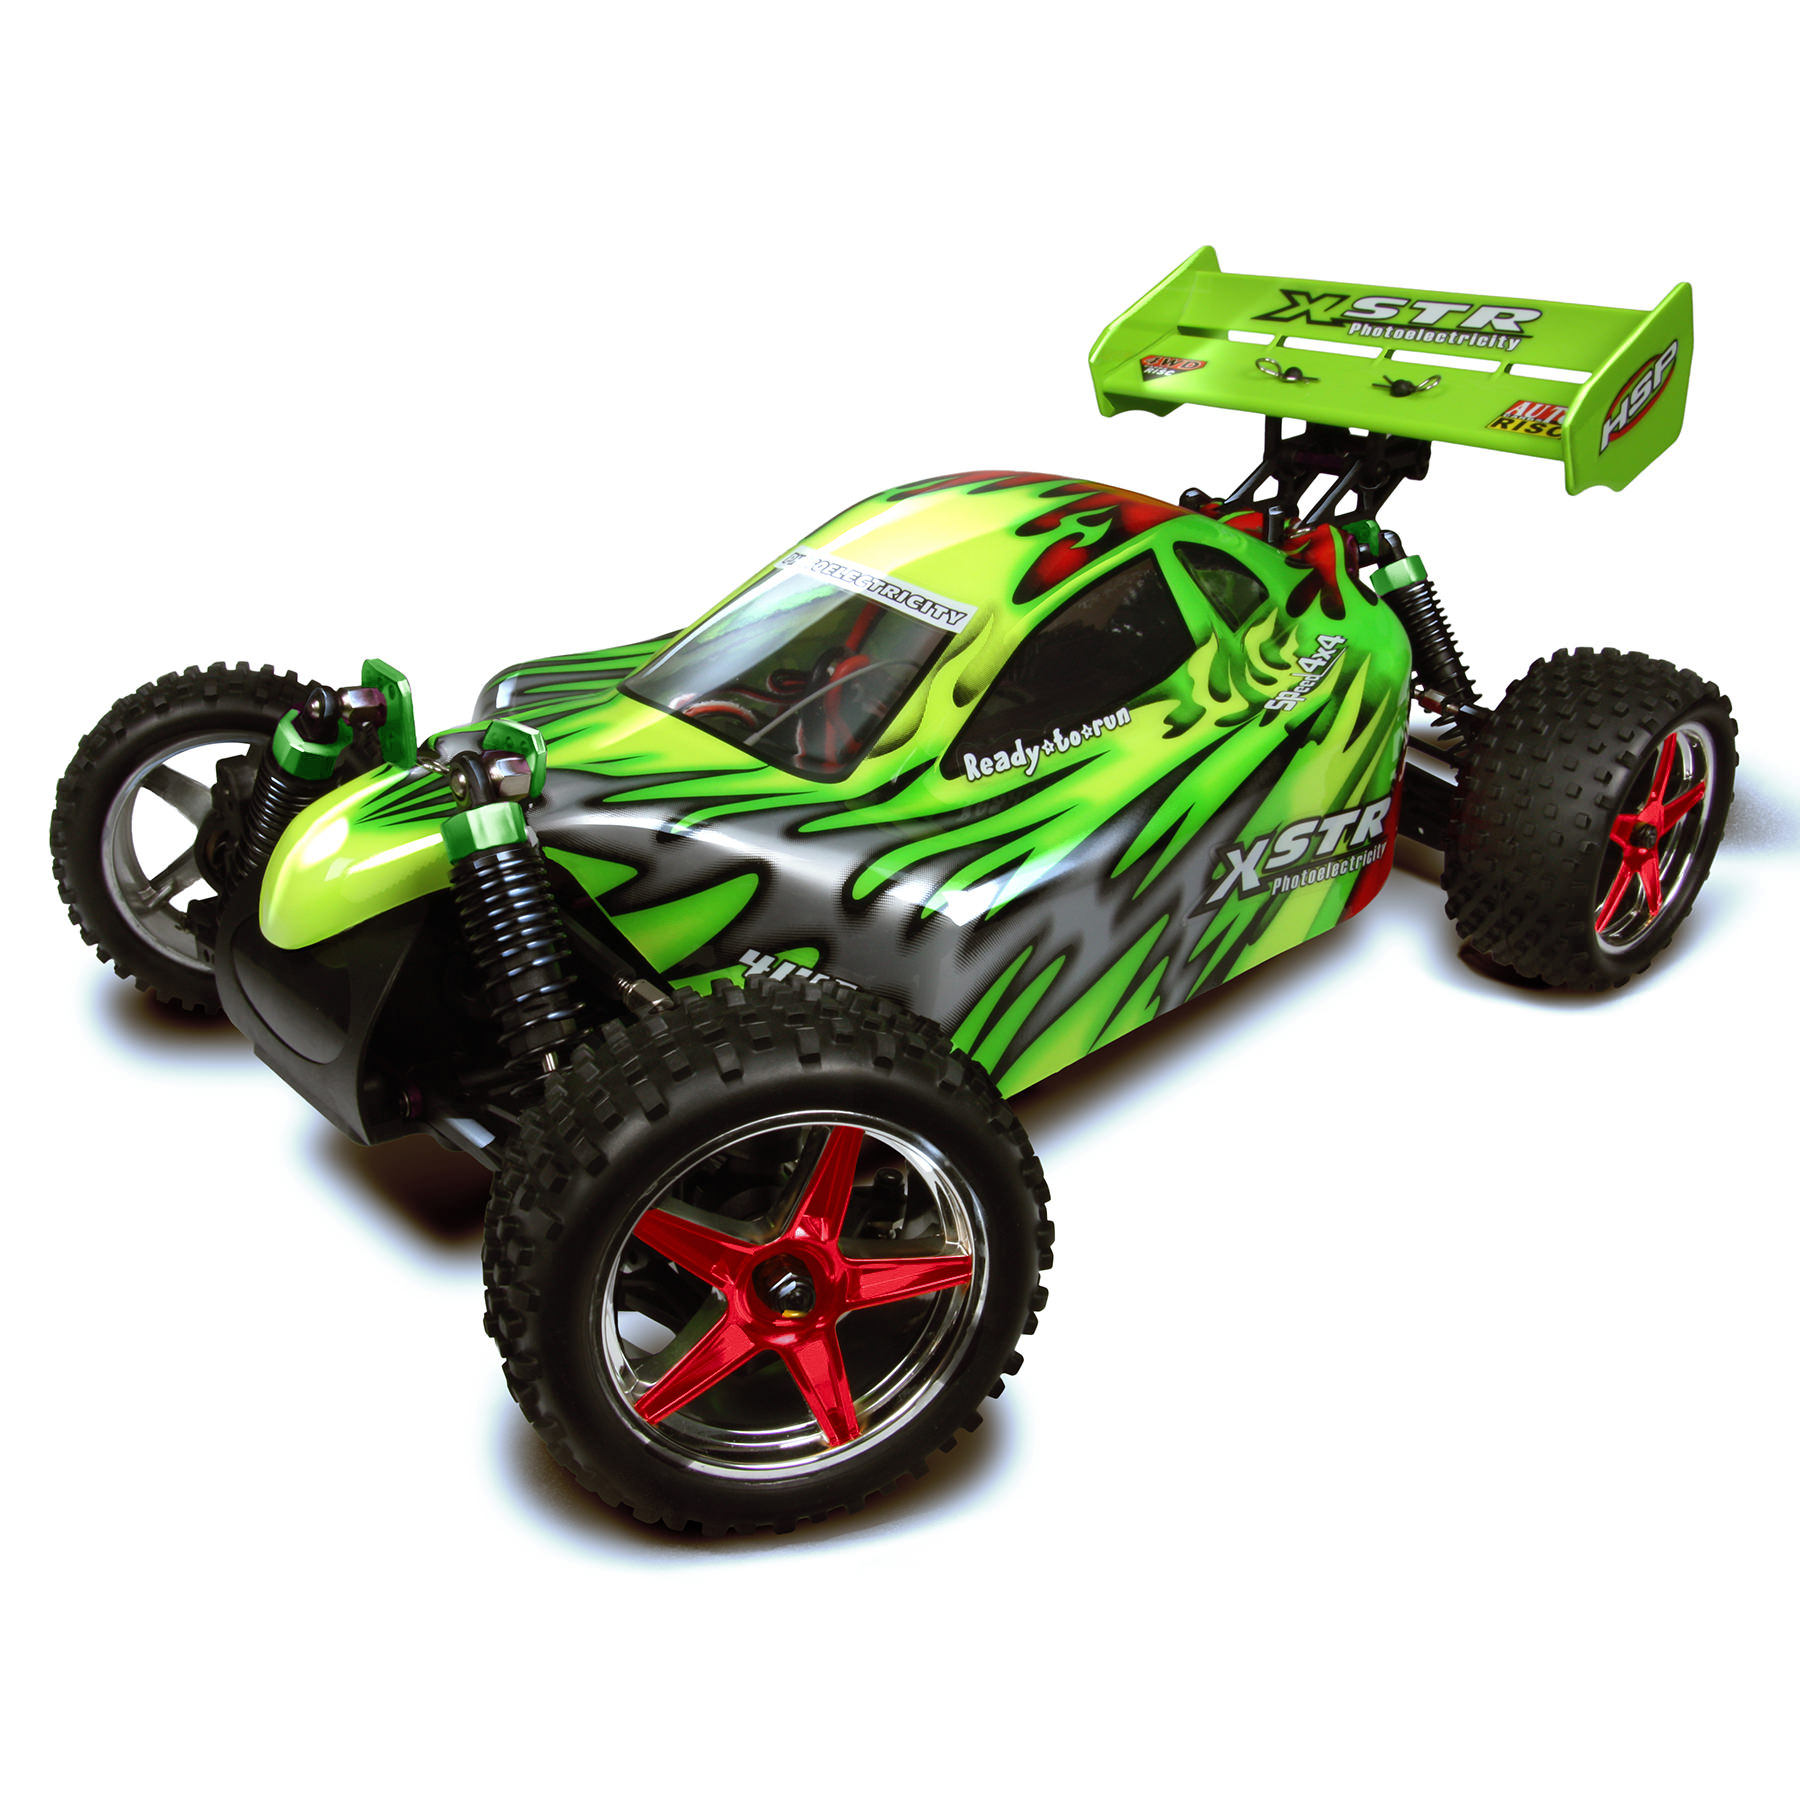 hobby horse rc with Hsp 94107 10707 Mean Green Rc Buggy on 4 Ch Fms Stearman Pt 17 Rc Biplane Rc Biplane Airplane Kit additionally Tamiya Toyota 4x4 Rc Helix Truck Up ing Antique furthermore Hsp 94107 10707 Mean Green Rc Buggy moreover Hsp 94123 10030 1 Black Rc Car further 3517 Nitroplanes Pitts Kit Nitro Power RC 5 Channel.